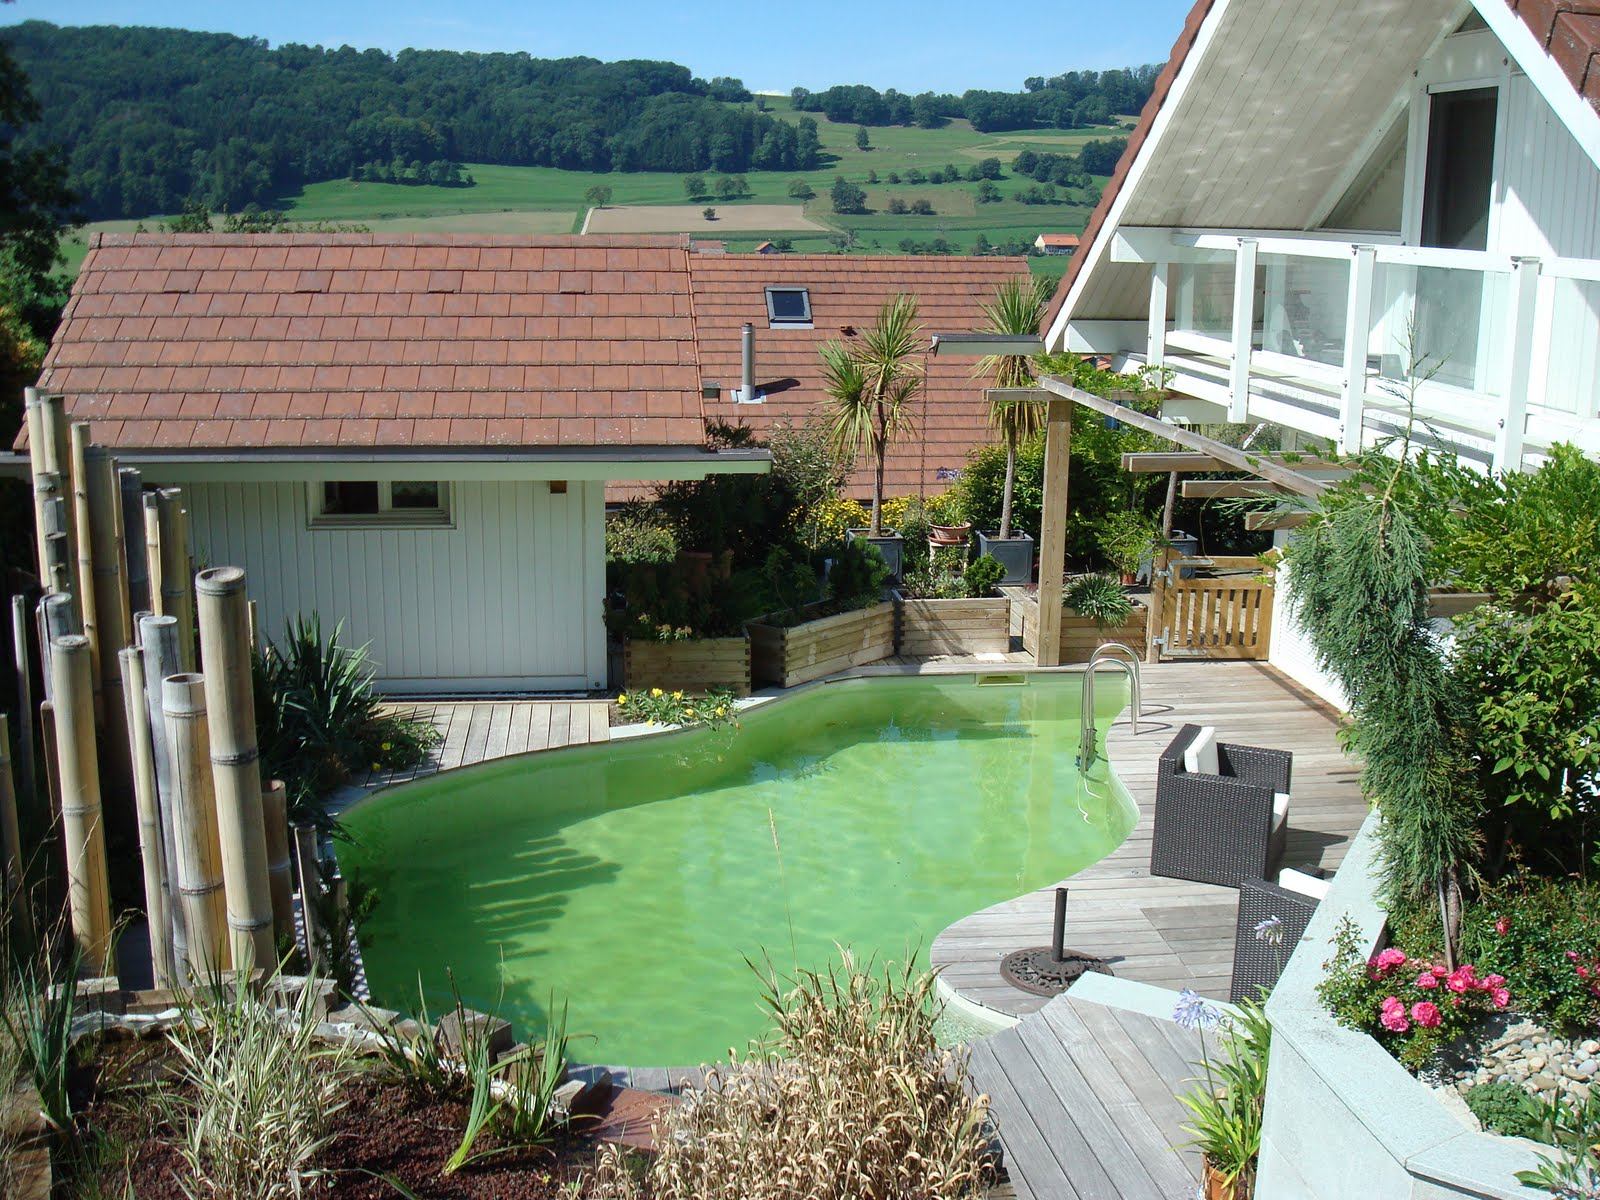 Paysagiste et am nagement de jardin thonon et annemasse for Bassin naturel piscine